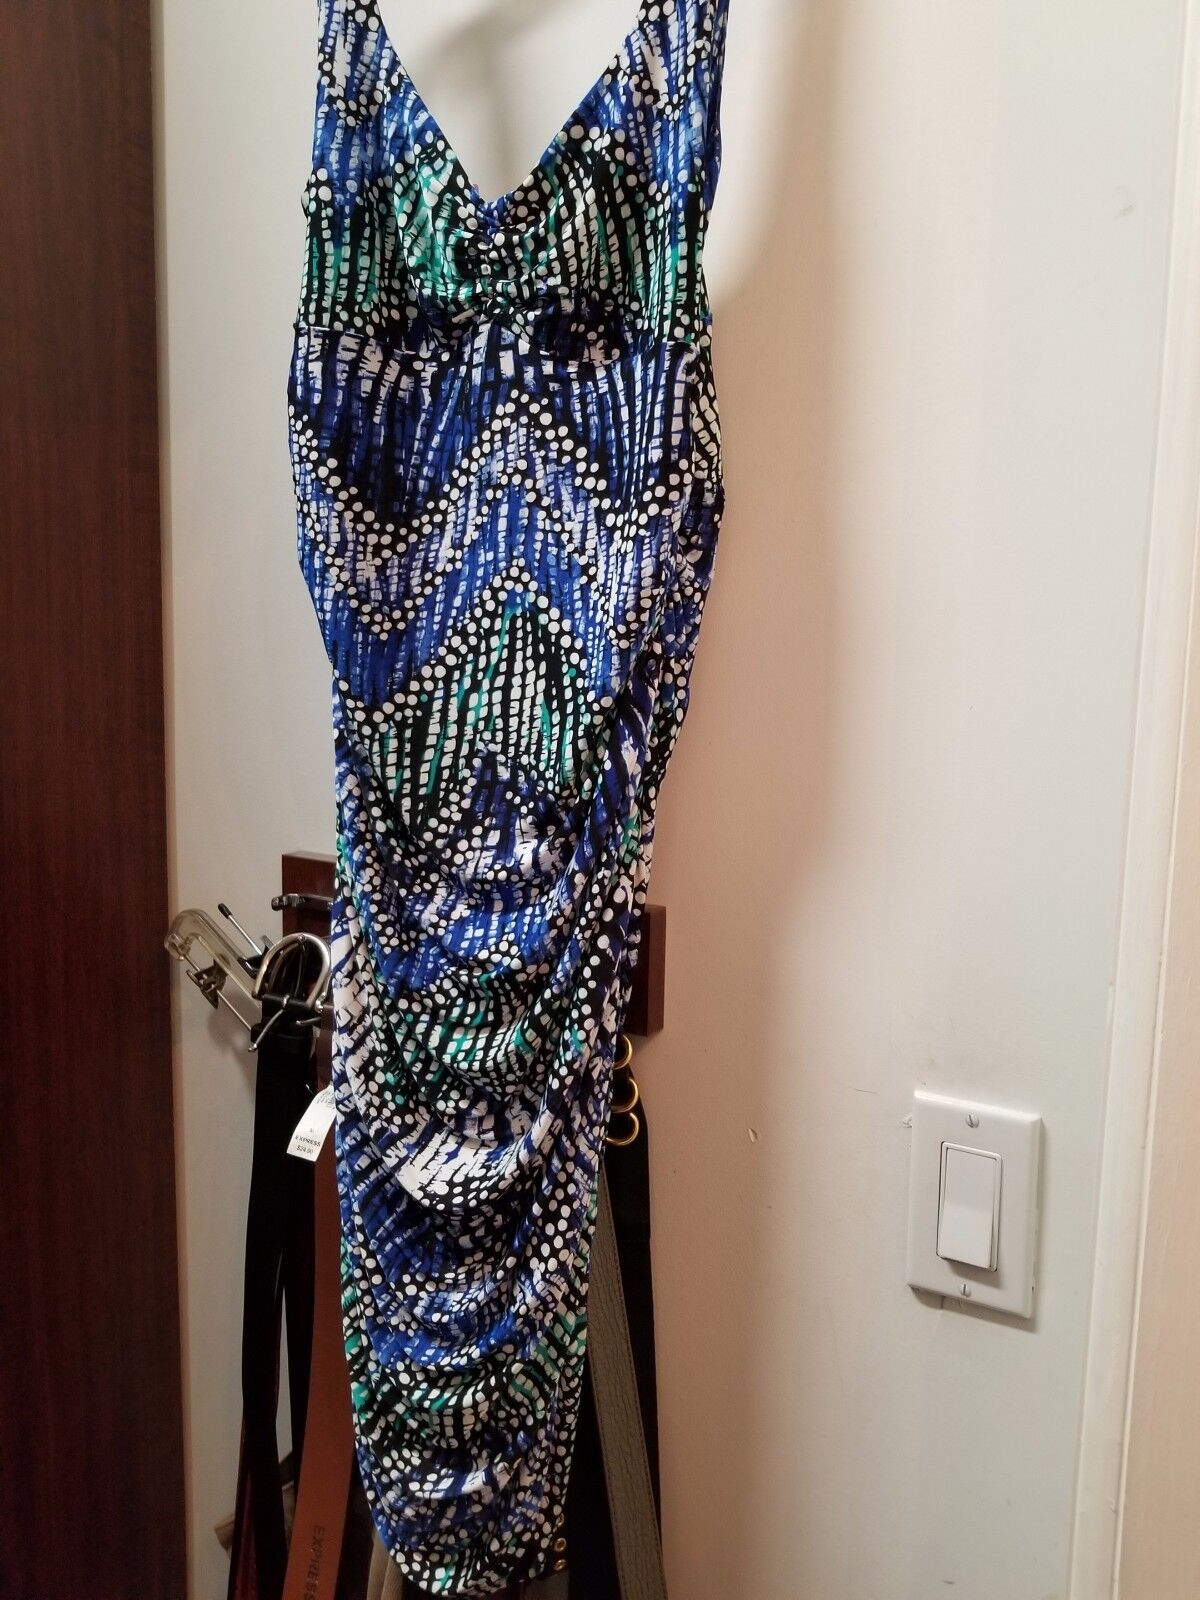 Veronica m multi colord dress in medium - NWT